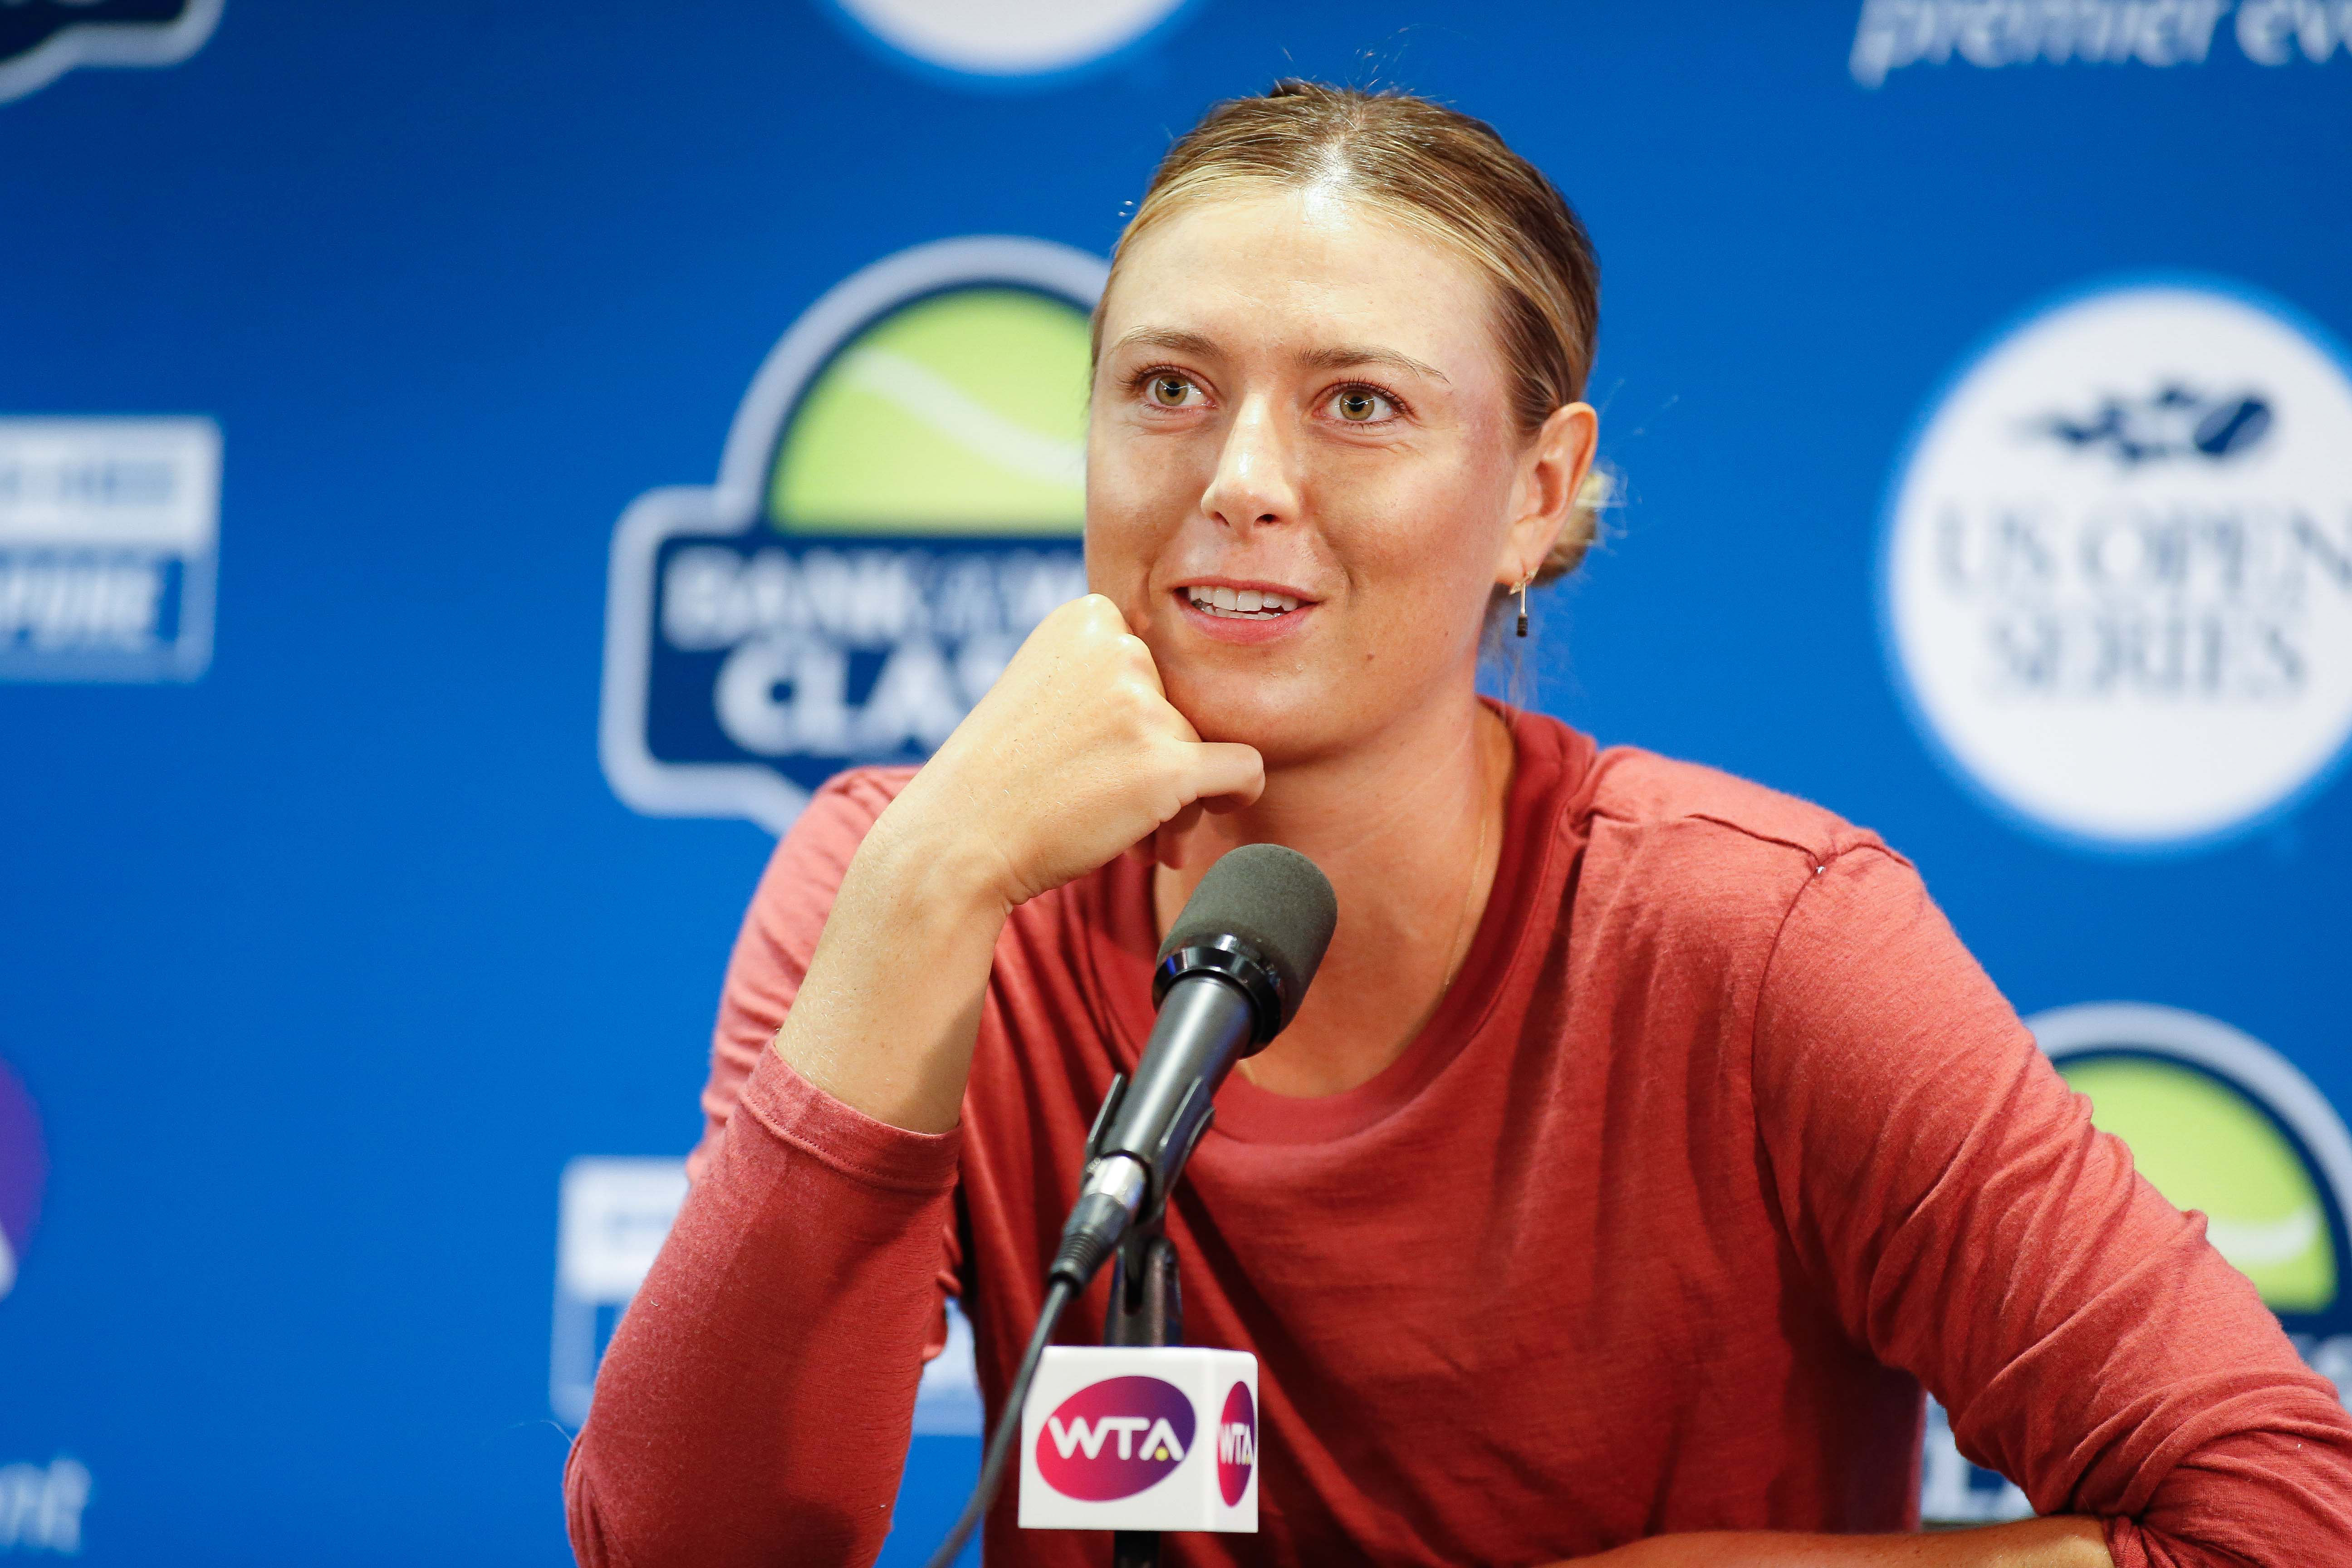 Jul 31, 2017; Palo Alto, CA, USA; Maria Sharapova (RUS) conducts a post game interview after defeating Jennifer Brady (USA) in the Bank of the West Classic tennis tournament at Stanford University. Mandatory Credit: Stan Szeto-USA TODAY Sports